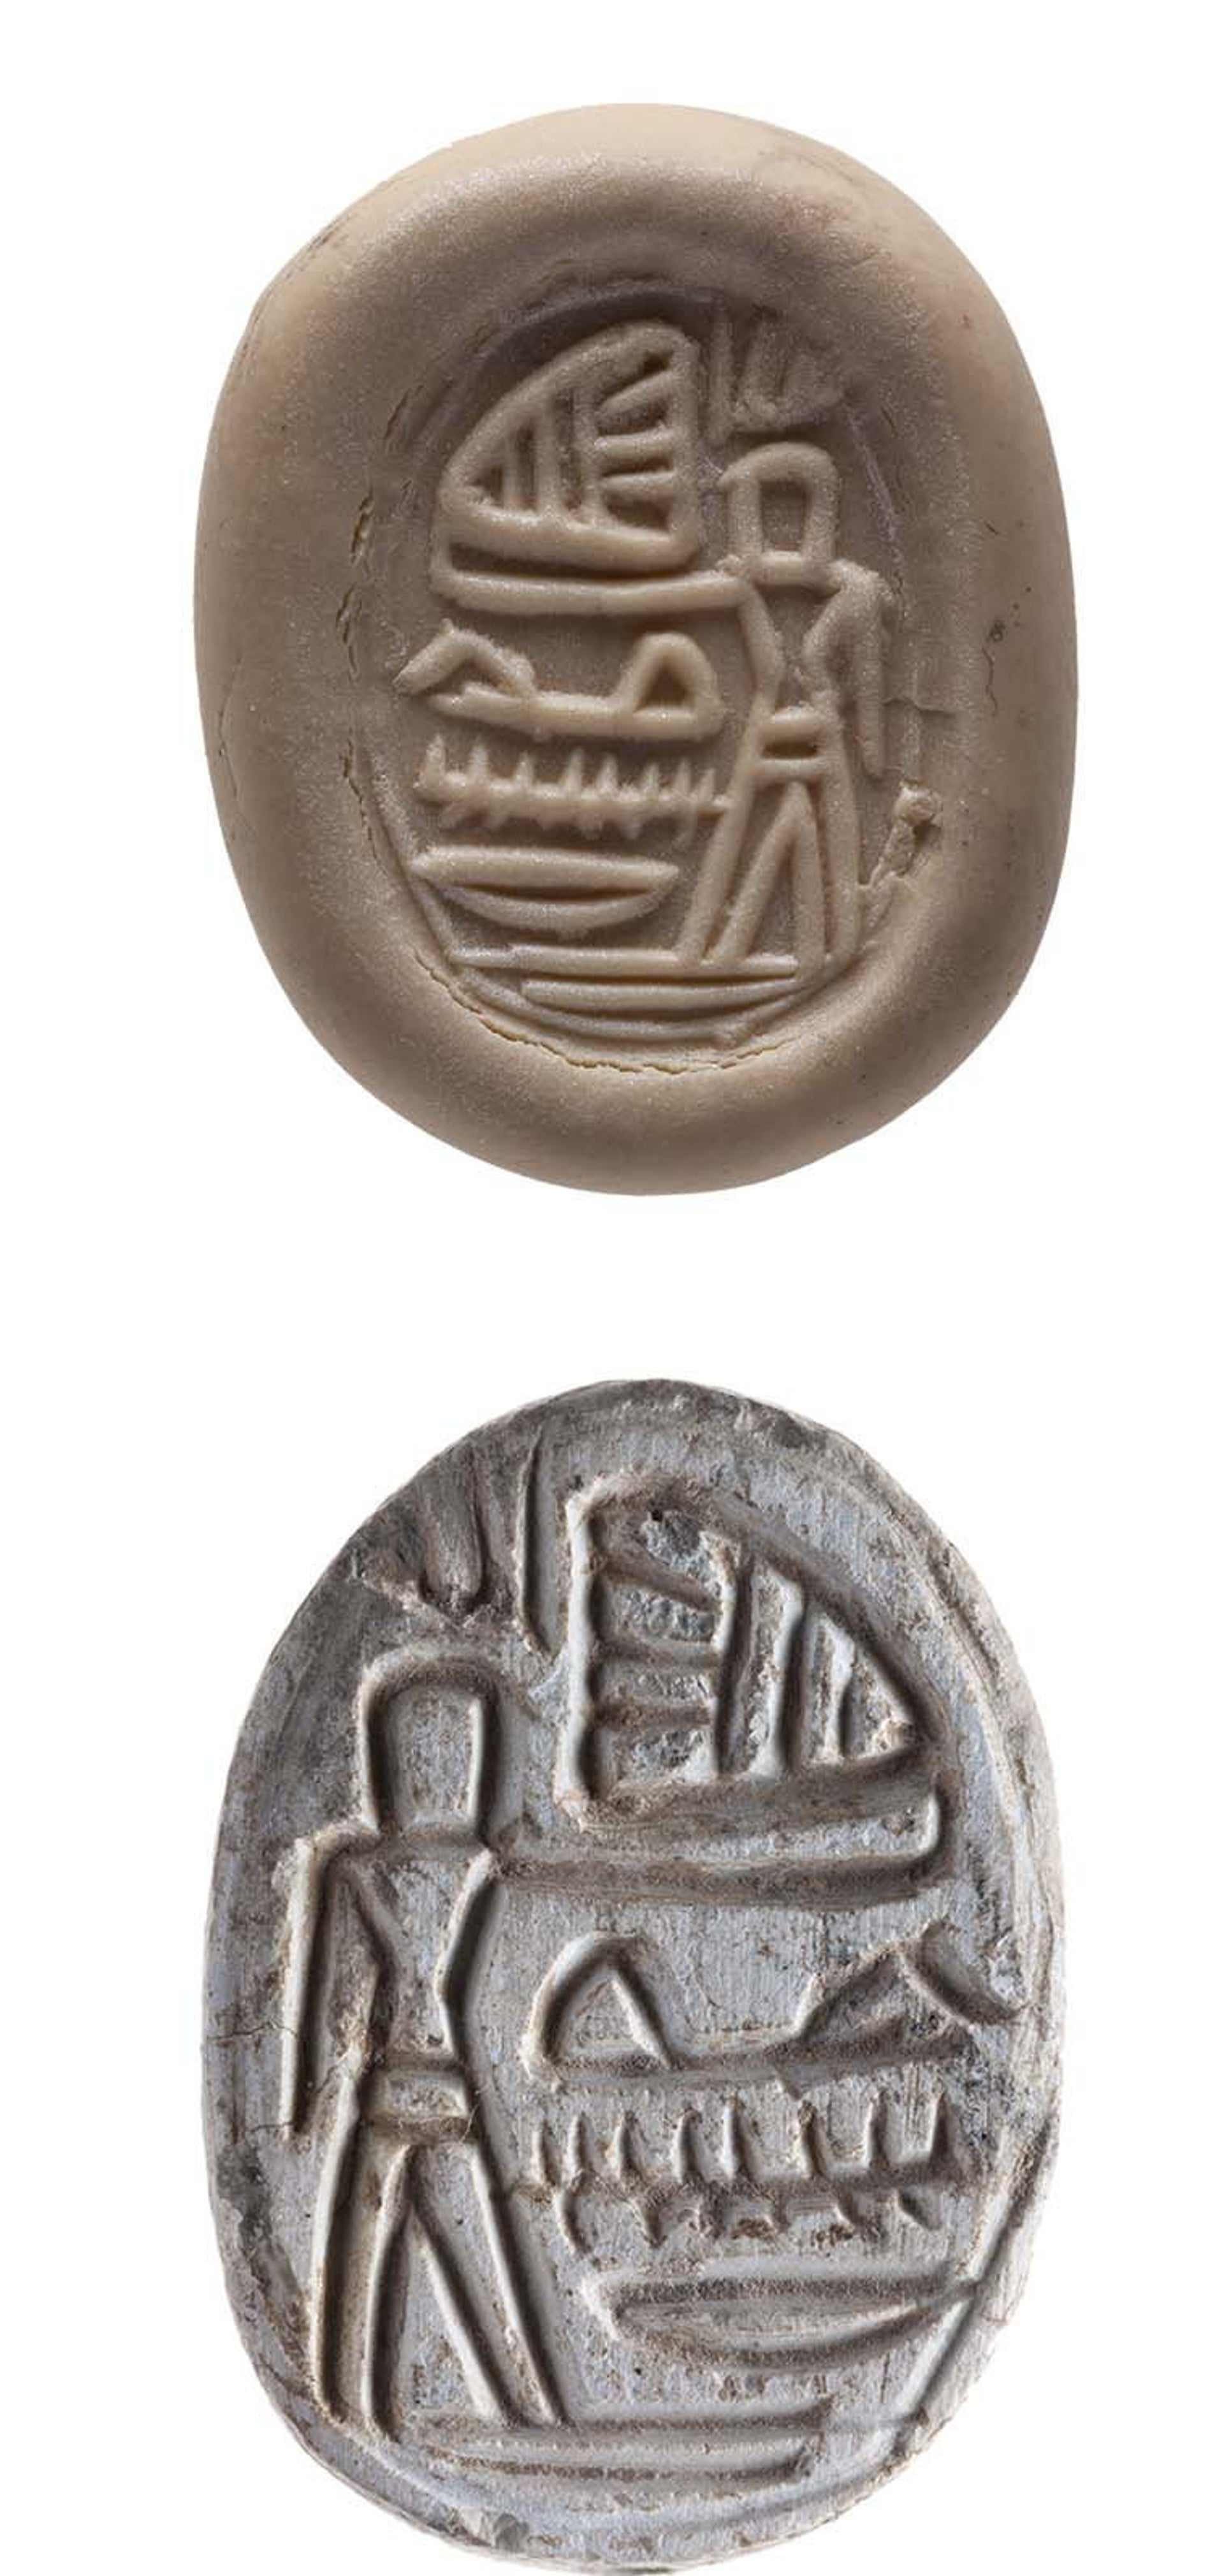 Signs of Egyptian influence: Scarab found at Lachish